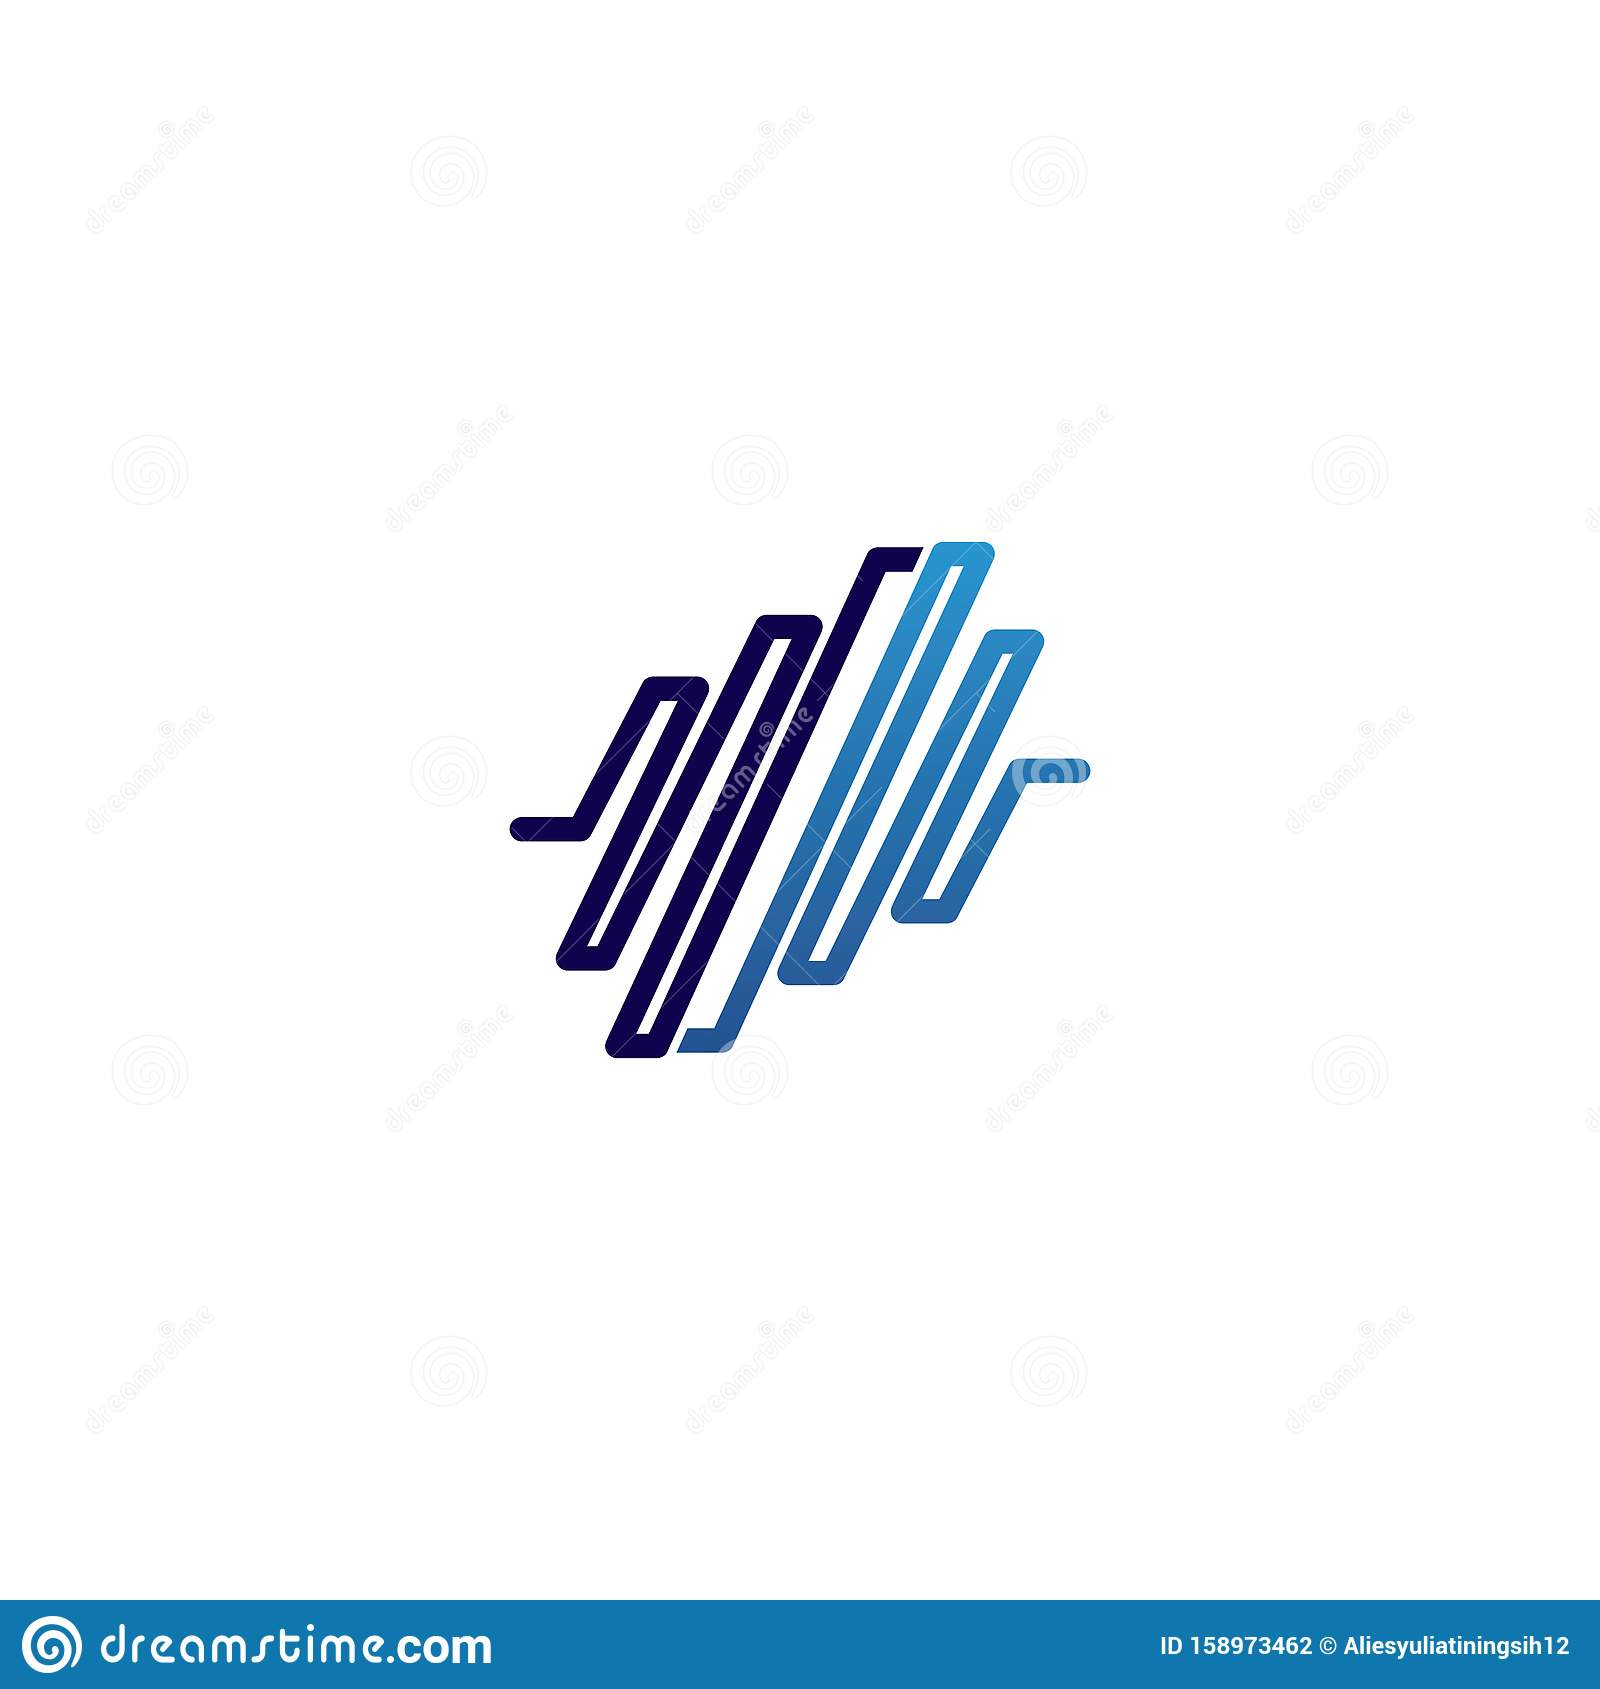 Illustration Of The Sound Wave Icon Vector Icon Template Logo Stock Vector Illustration Of Indicator Musical 158973462 Download all 120 wave icons unlimited times with a single envato elements subscription. https www dreamstime com illustration sound wave icon vector template logo musical communication performance band audio engineer studio measurement image158973462